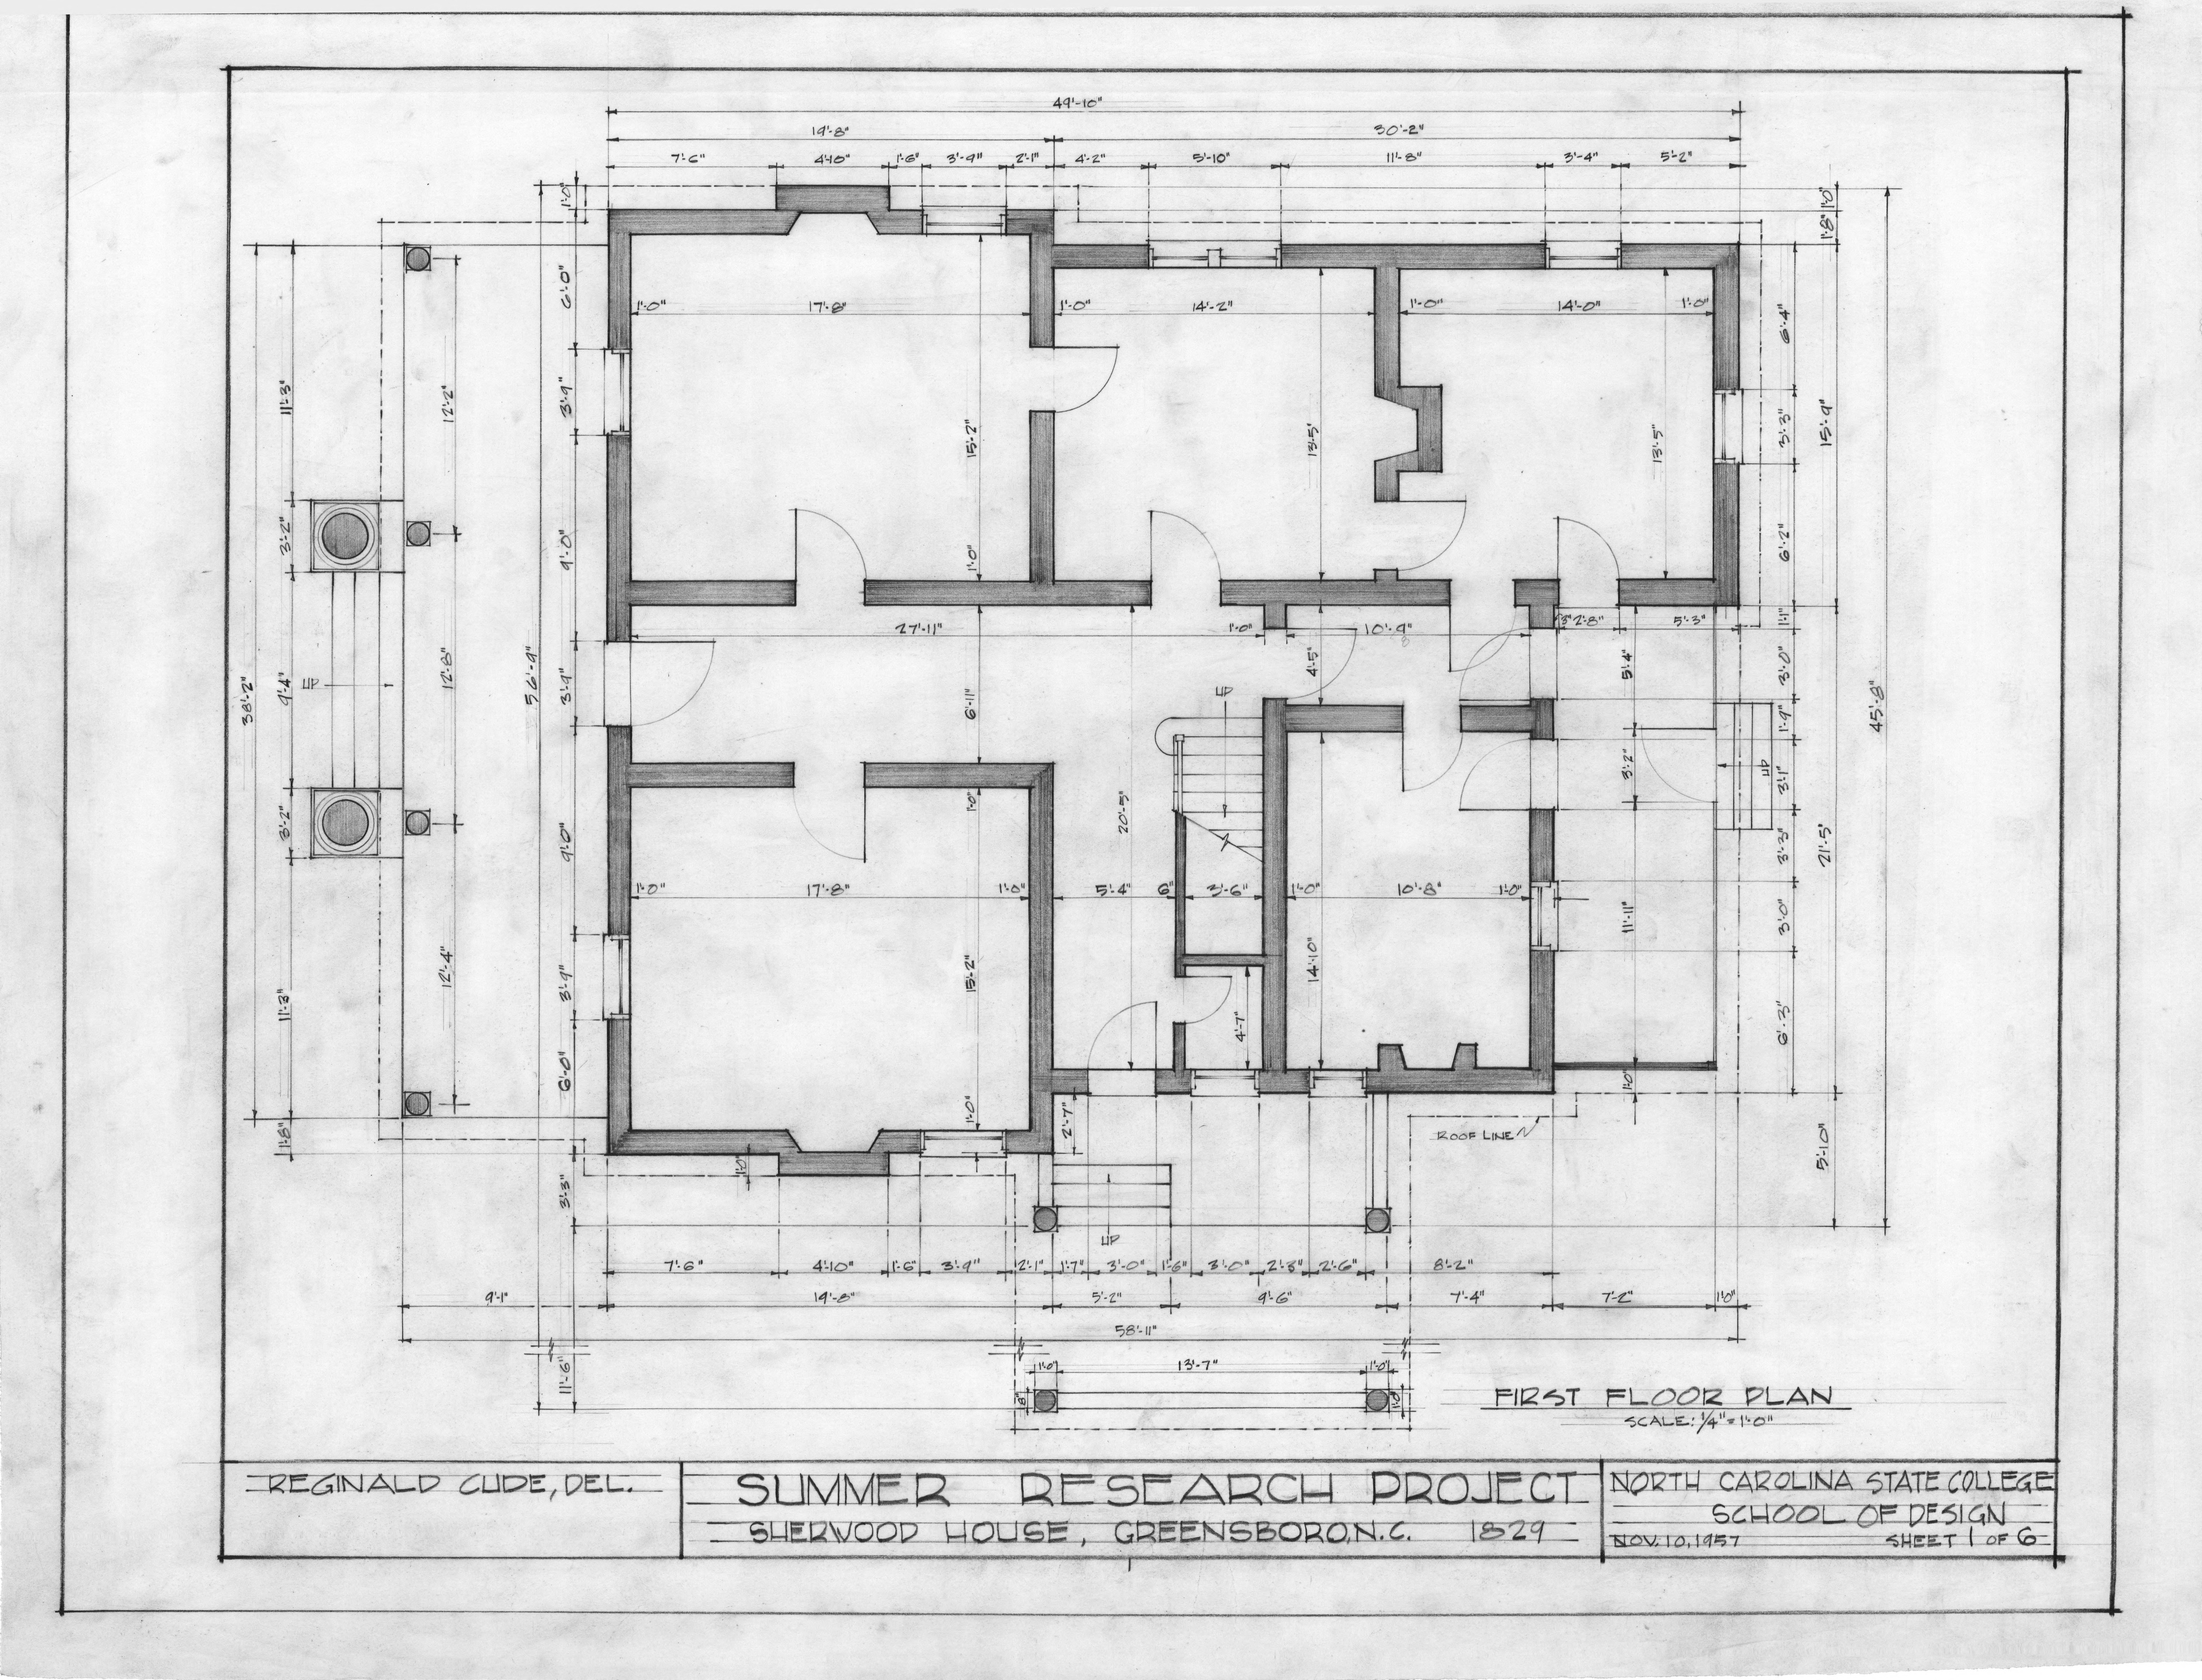 First Floor Plan Sherwood House Greensboro North